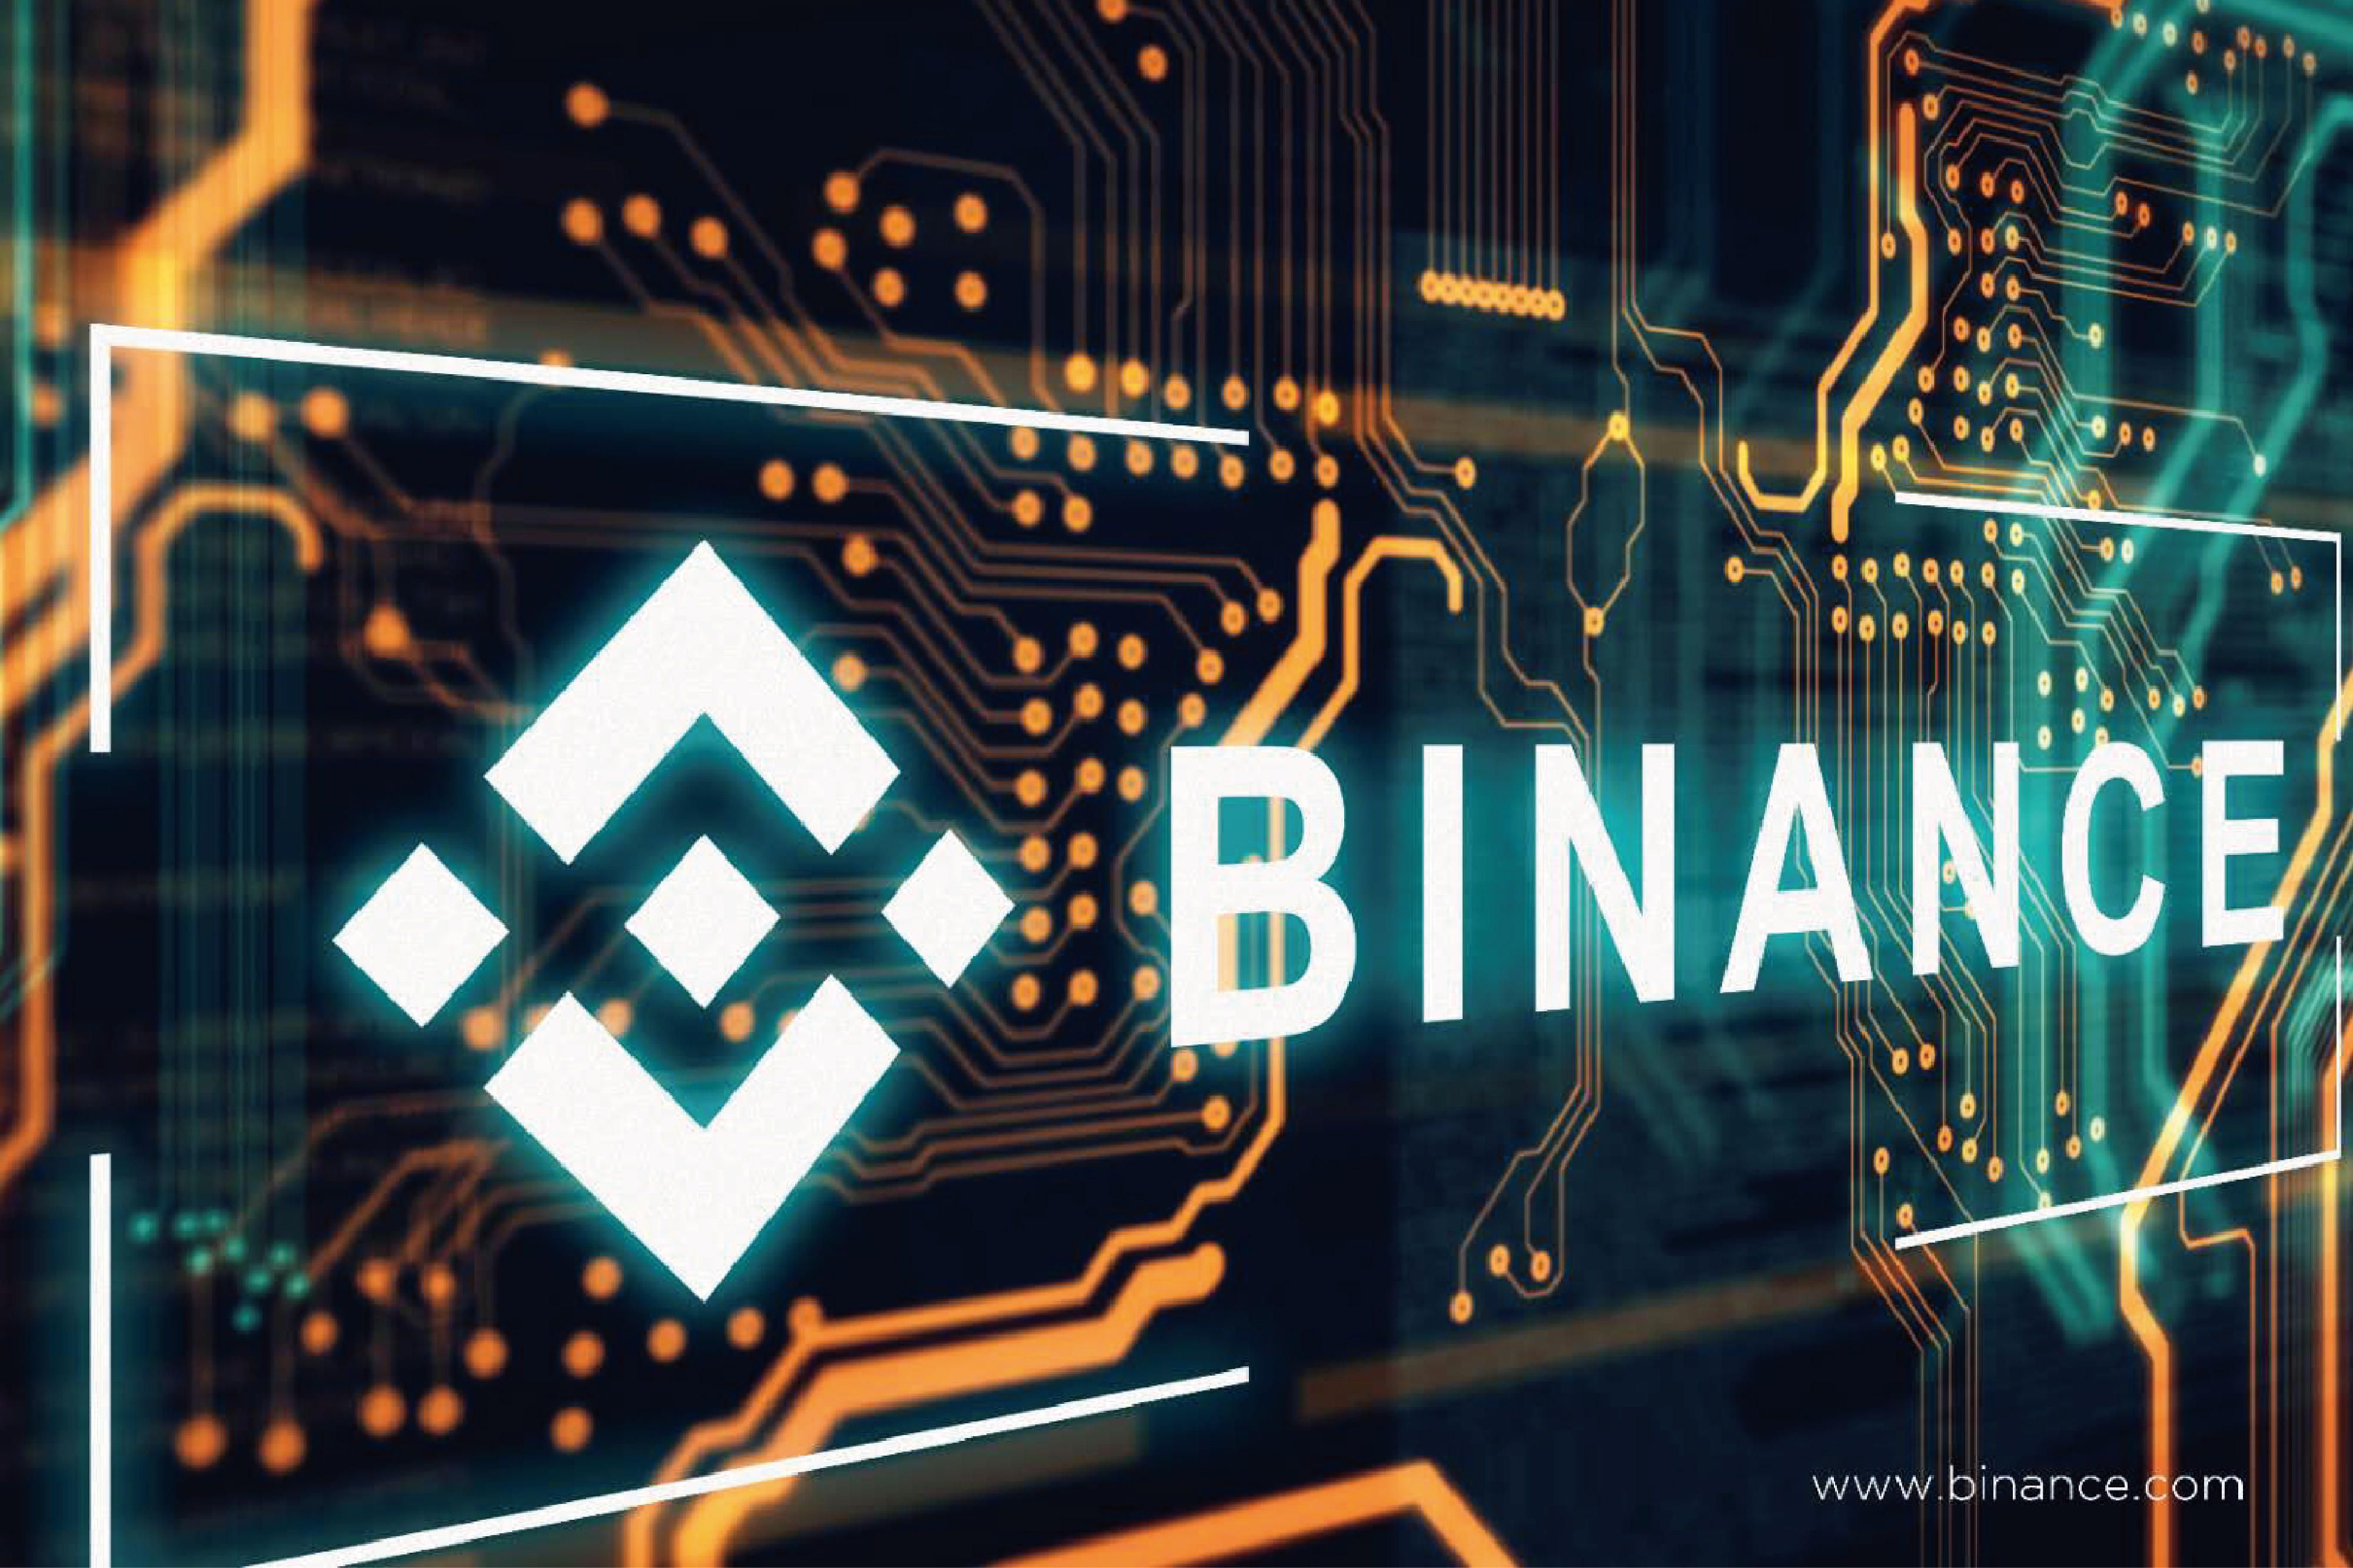 https://www.cryptoworldjournal.com/developers-incorporate-a-mechanism-to-burn-a-part-of-the-fees-on-the-binance-network/#respond